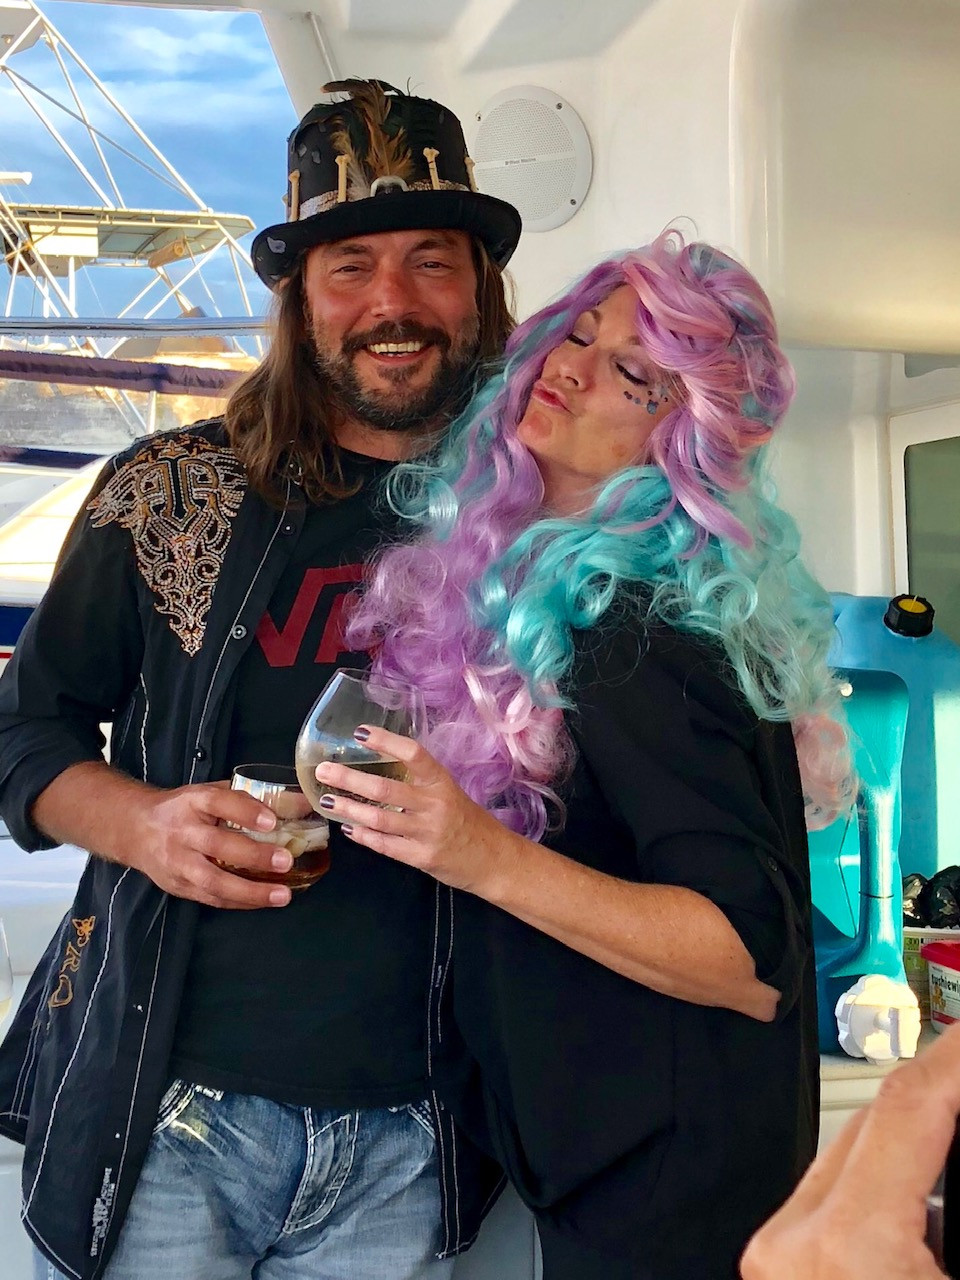 two people, sailing music and lyrics, party, dress-up, gypsy days